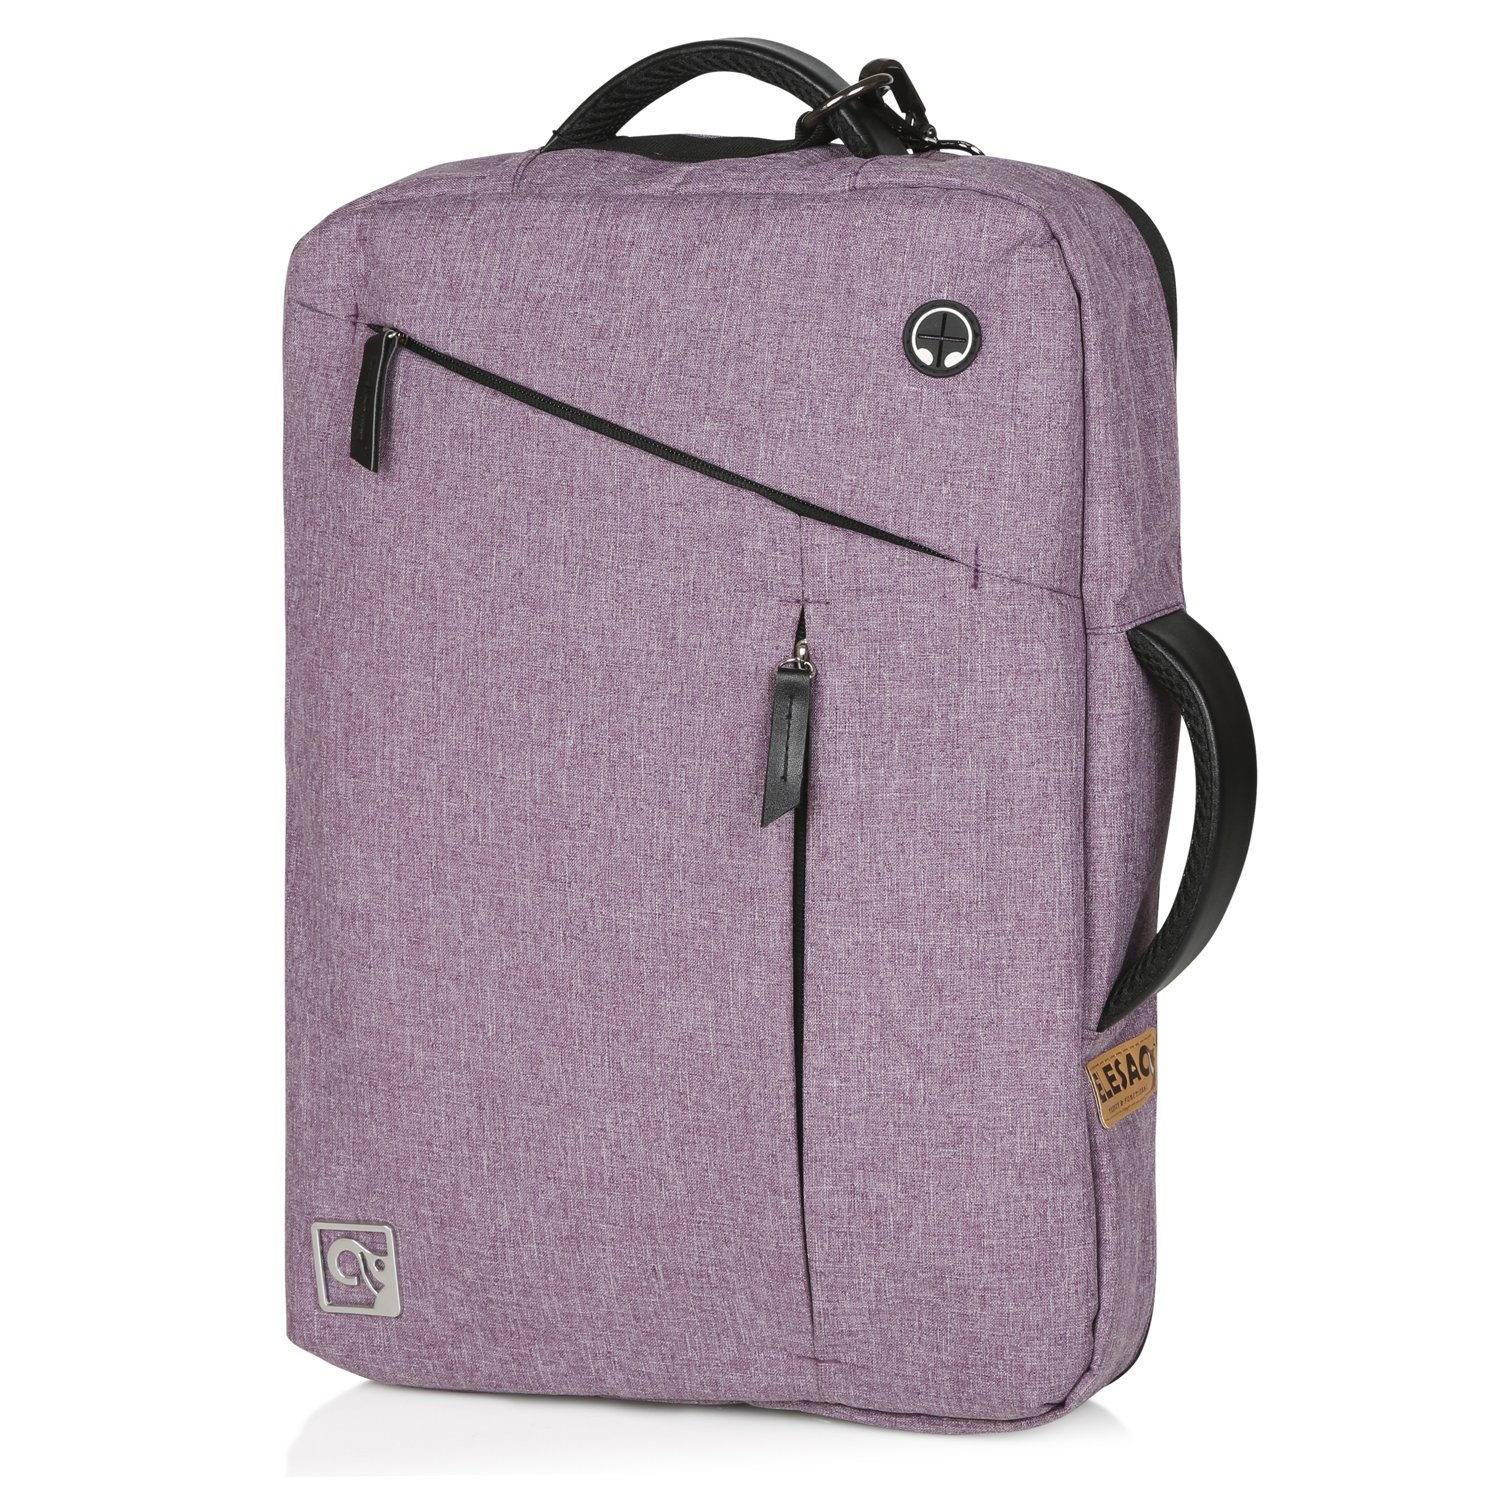 ELESAC Convertible 15 inch Laptop Briefcase & Backpack - Foldable Straps - Removable Shoulder Strap - Laptop case for HP/DELL / Lenovo/Toshiba / ASUS/ACER / Apple/COMPAQ / Tablet/E-Reader 15163Purple